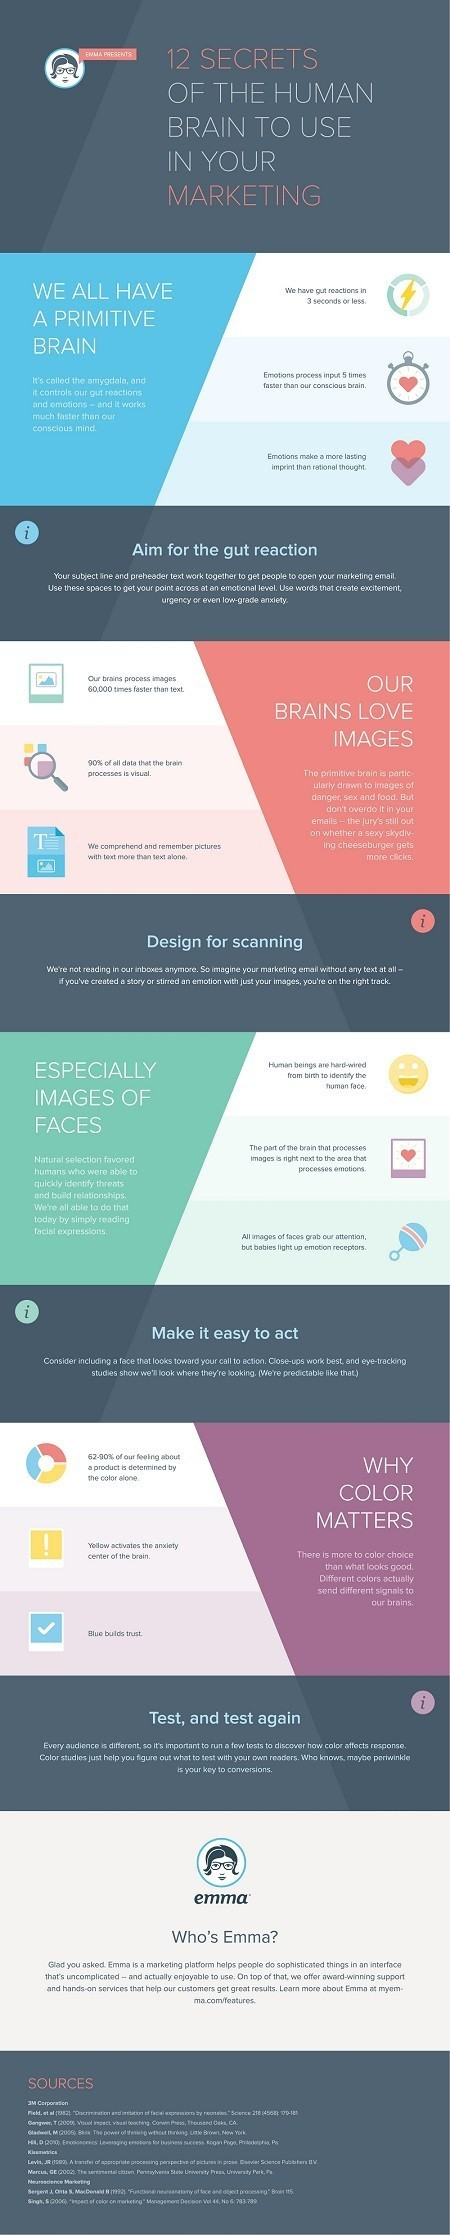 12 Secrets of the Human Brain to Use in Your Marketing [Infographic] | СписаниеТО Интернет Маркетинг | Scoop.it